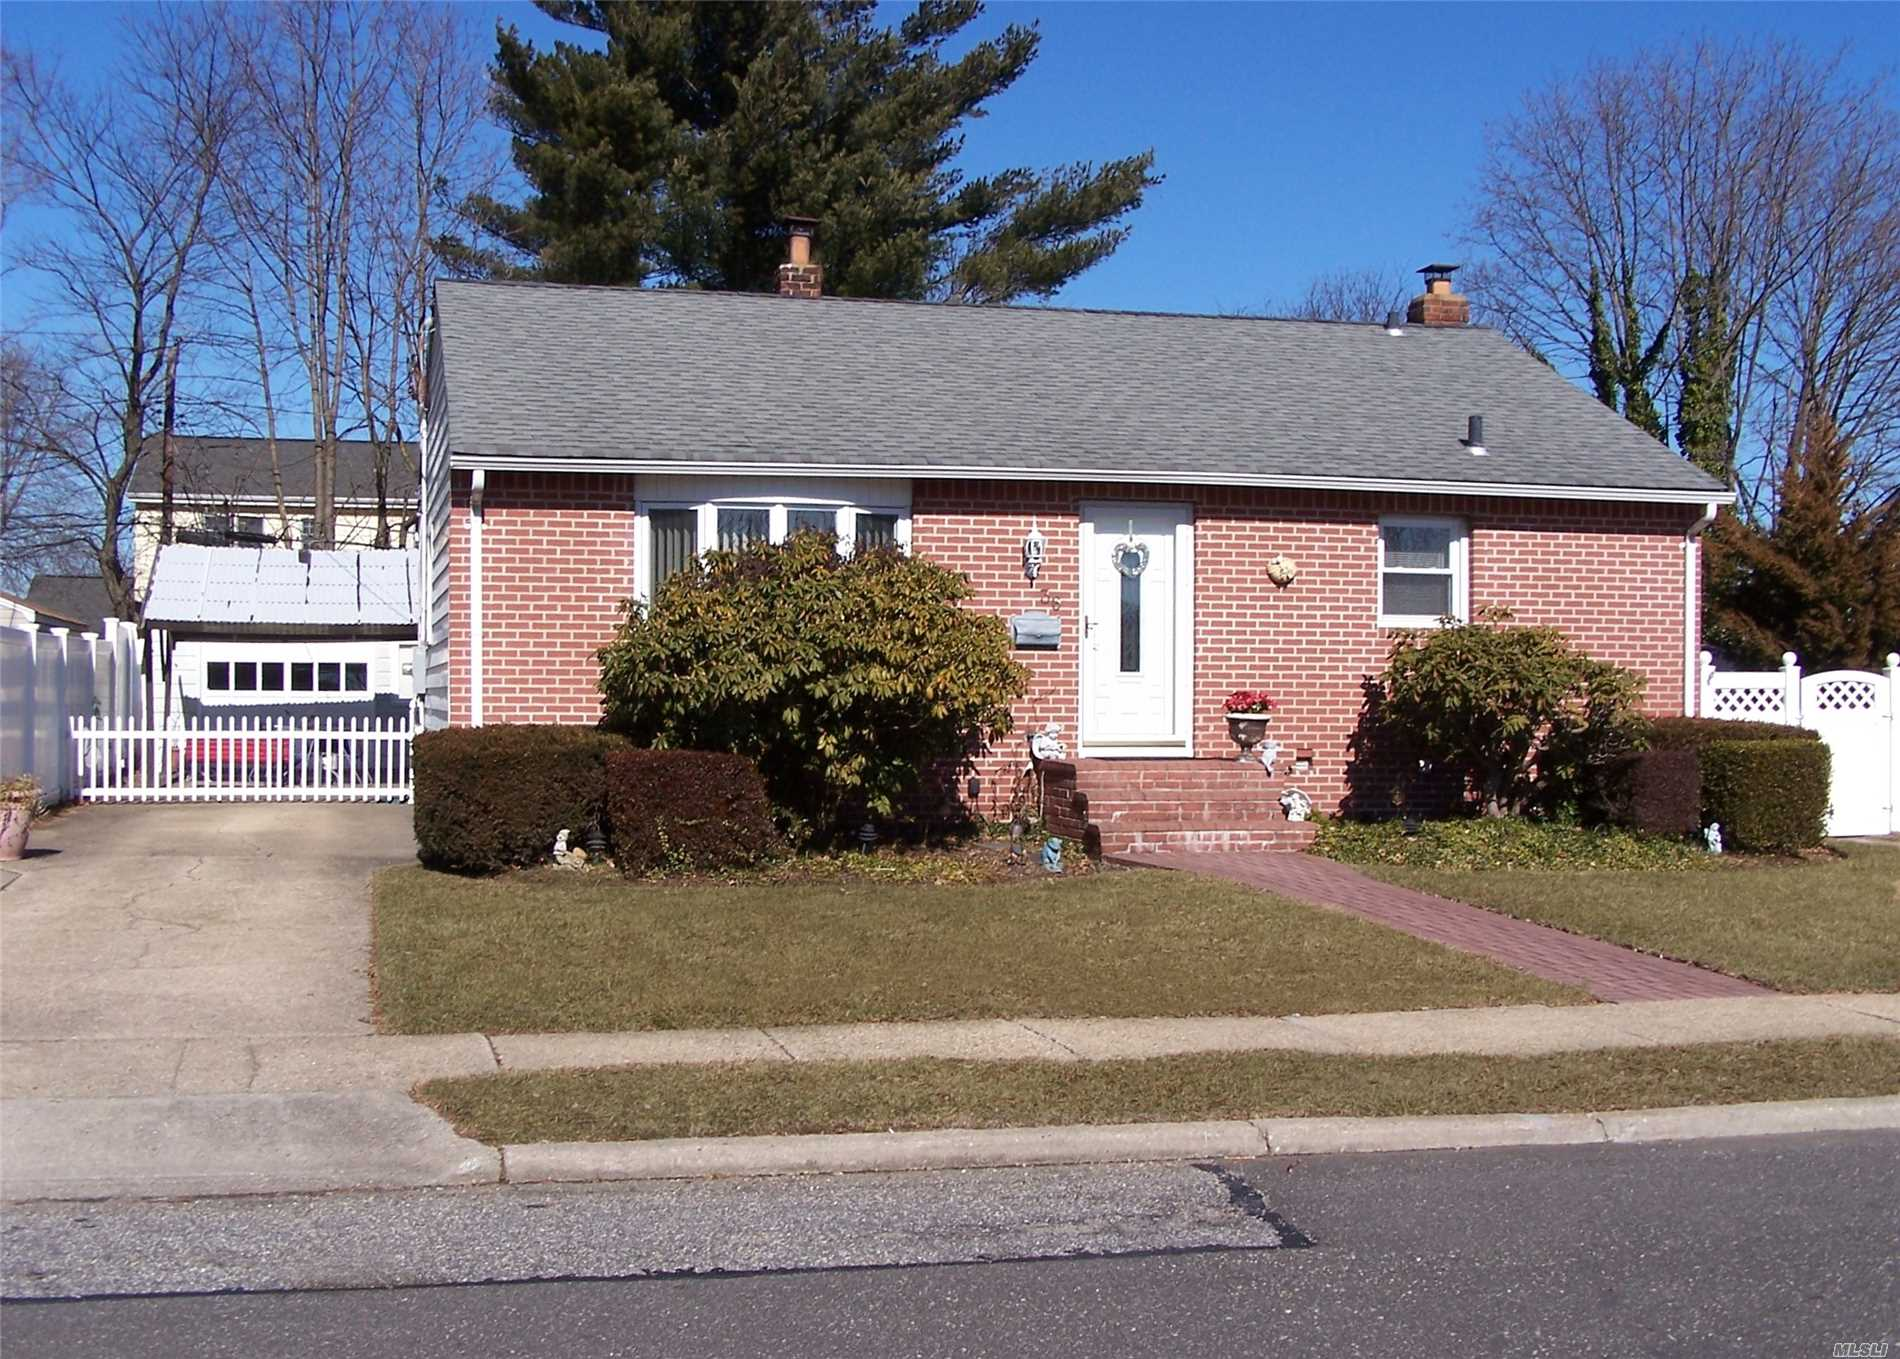 Well Maintained Brick Ranch With Room For Mom! Beautiful Hardwood Flooring, Lr With Bay Window. Full Fin Bsmt. Great Closet Space Thru-Out. Pull Down Attic Storage. Updated Windows, 2 Yr Old Electric, Updated Gas Burner Dual System. New Front Door, Exterior Lights, Detached Garage, Bethpage Schools! Close To All!